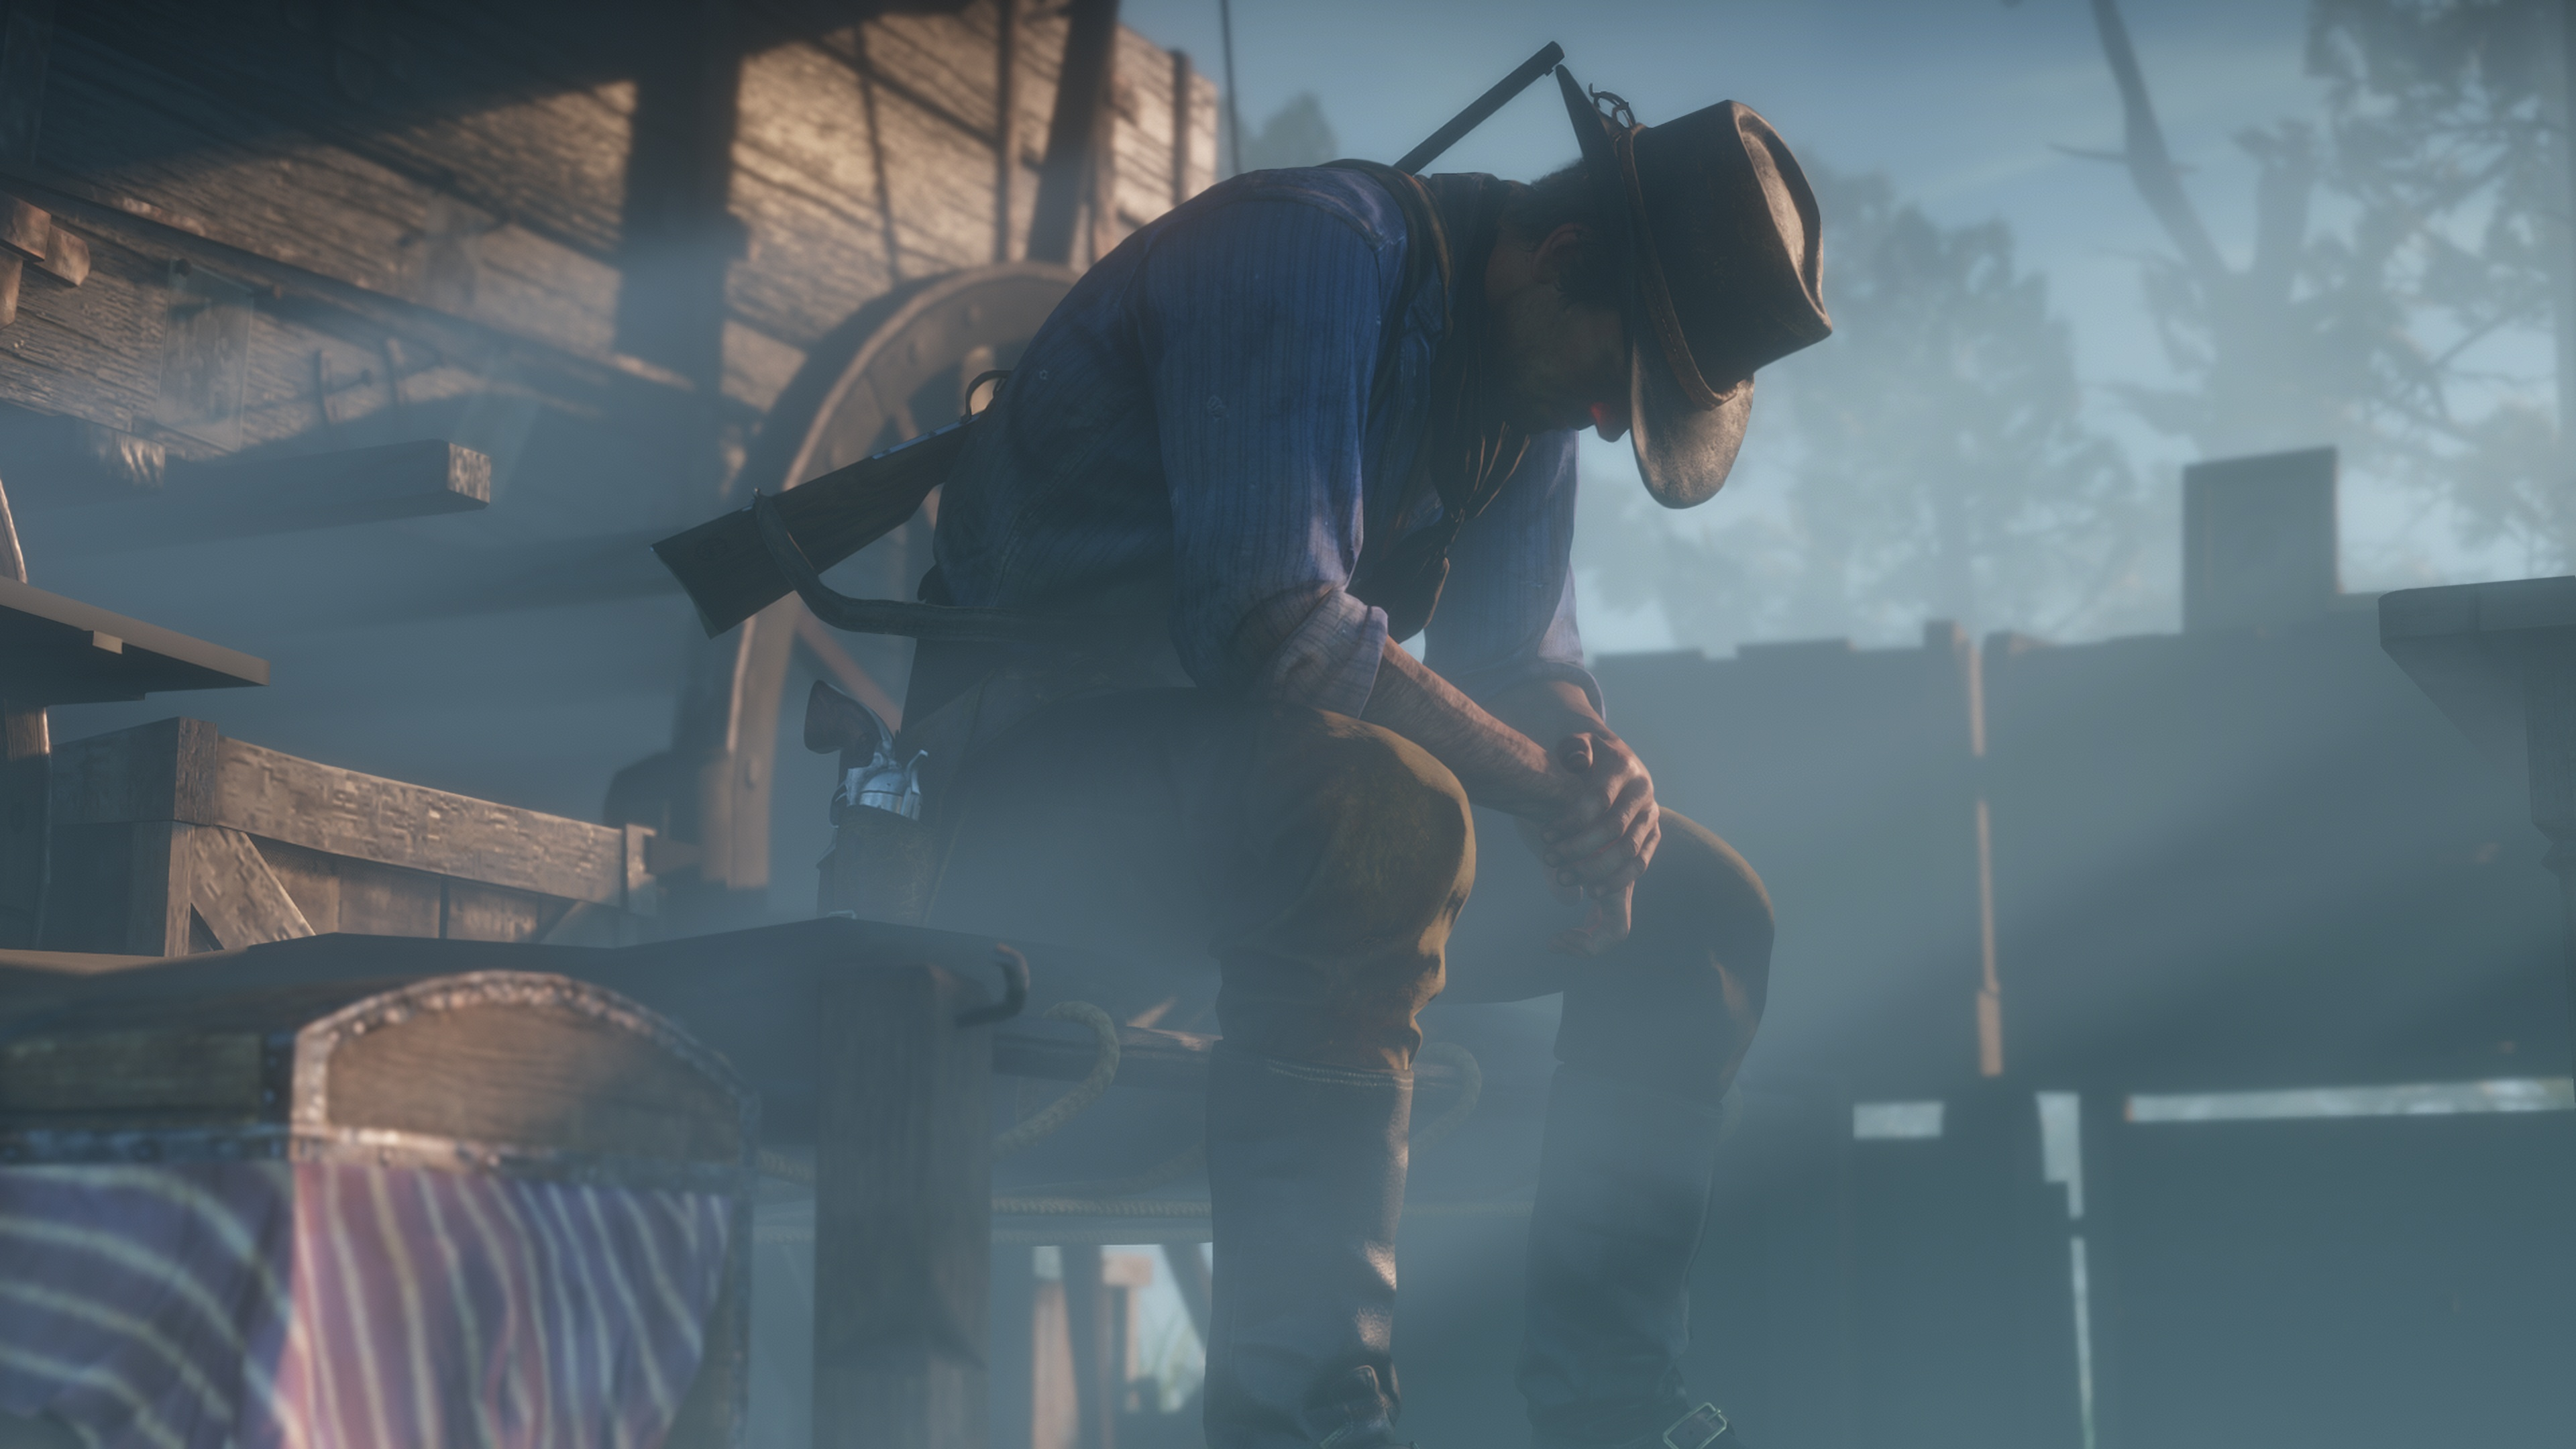 Rockstar is focused on Red Dead Online content, not single-player DLC